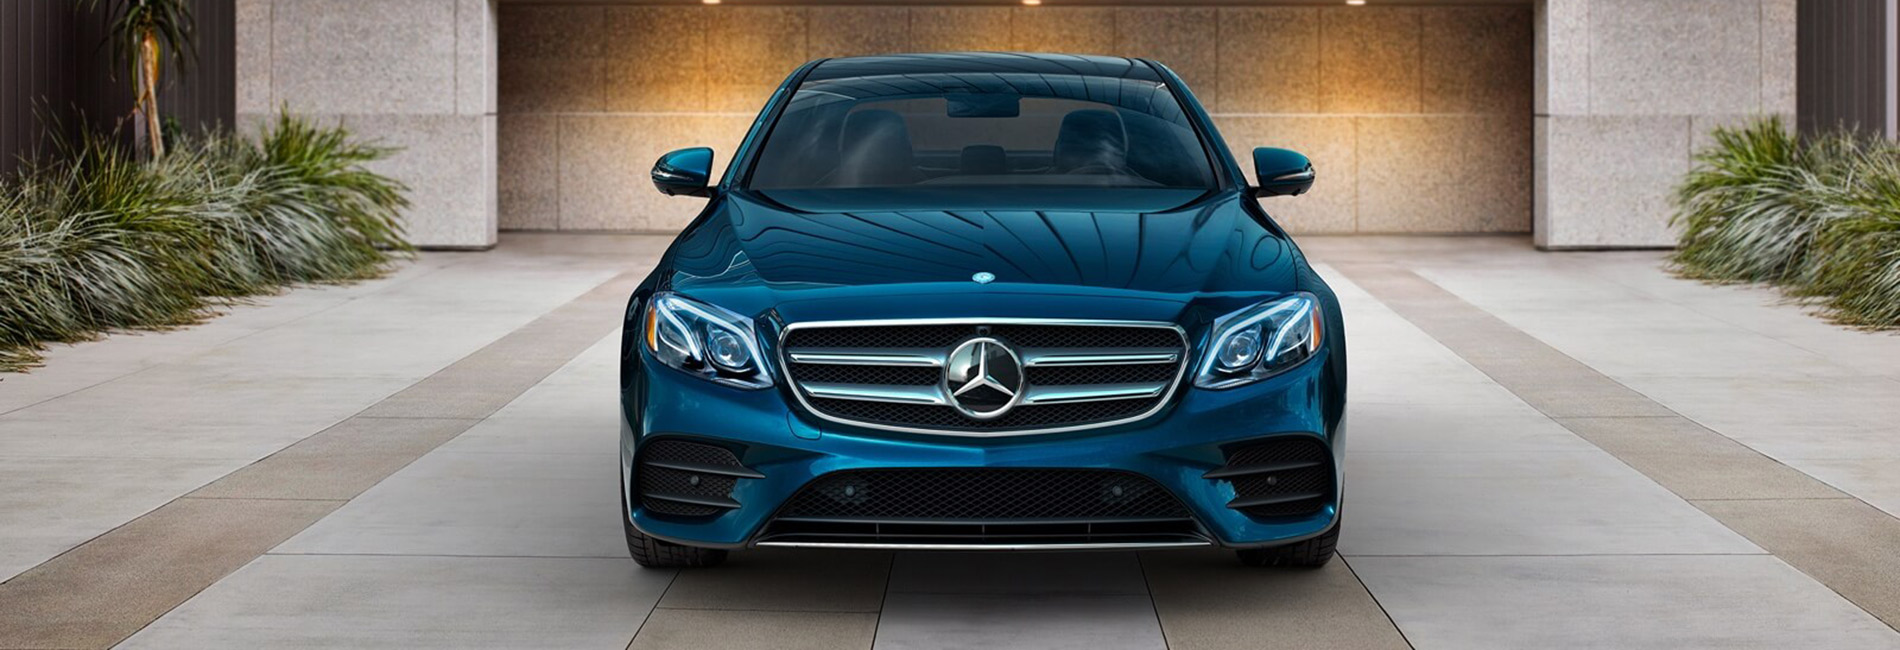 Discover certified pre owned mercedes benz edmonton west ltd for Mercedes benz canada pre owned